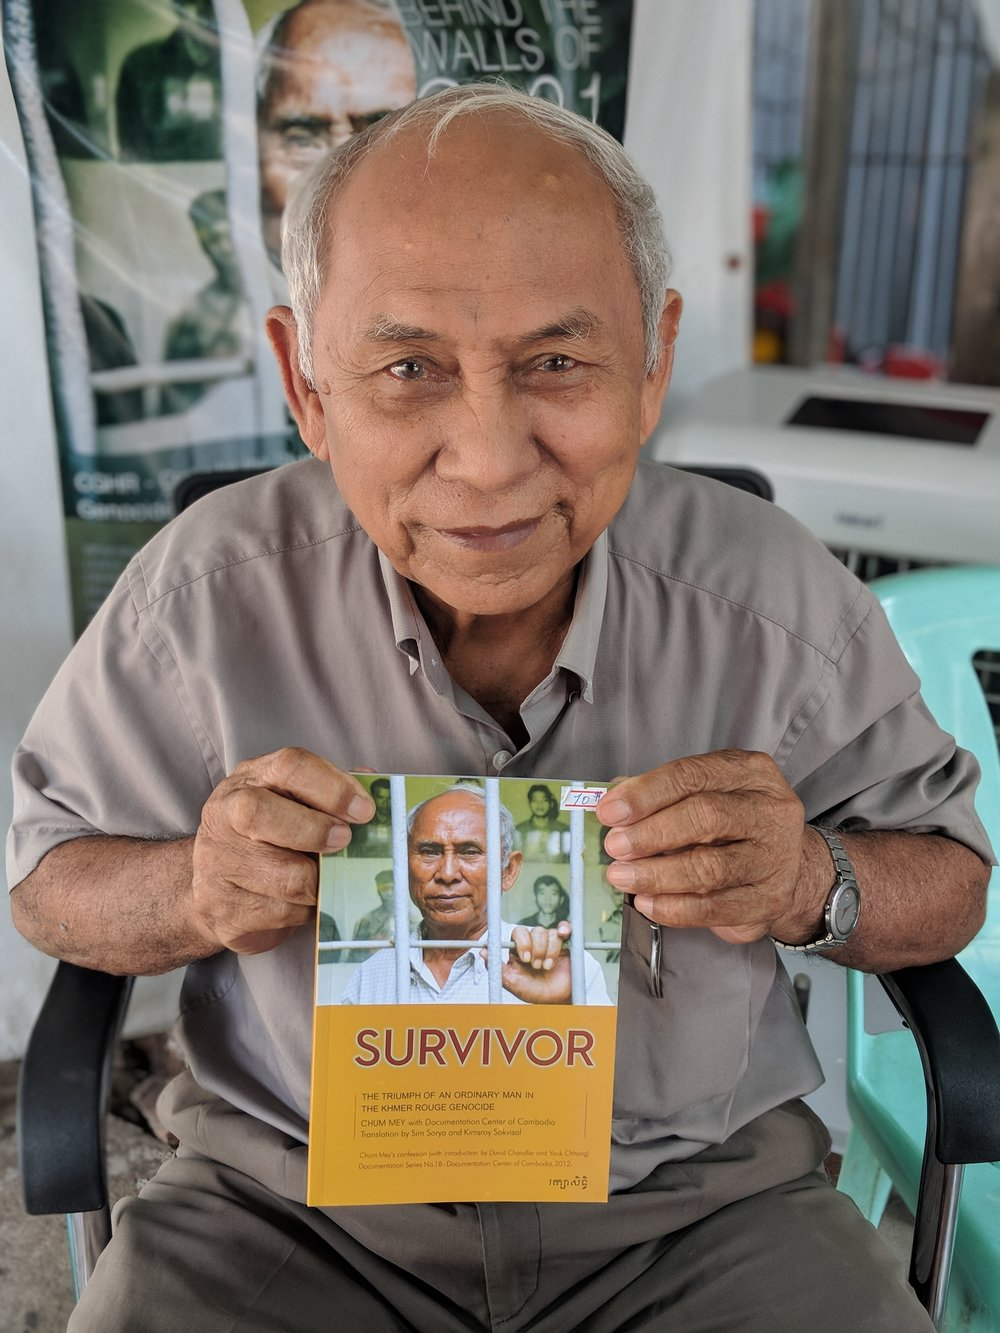 Survivor - The Triumph of an Ordinary Man in the Khmer Rouge Genocide